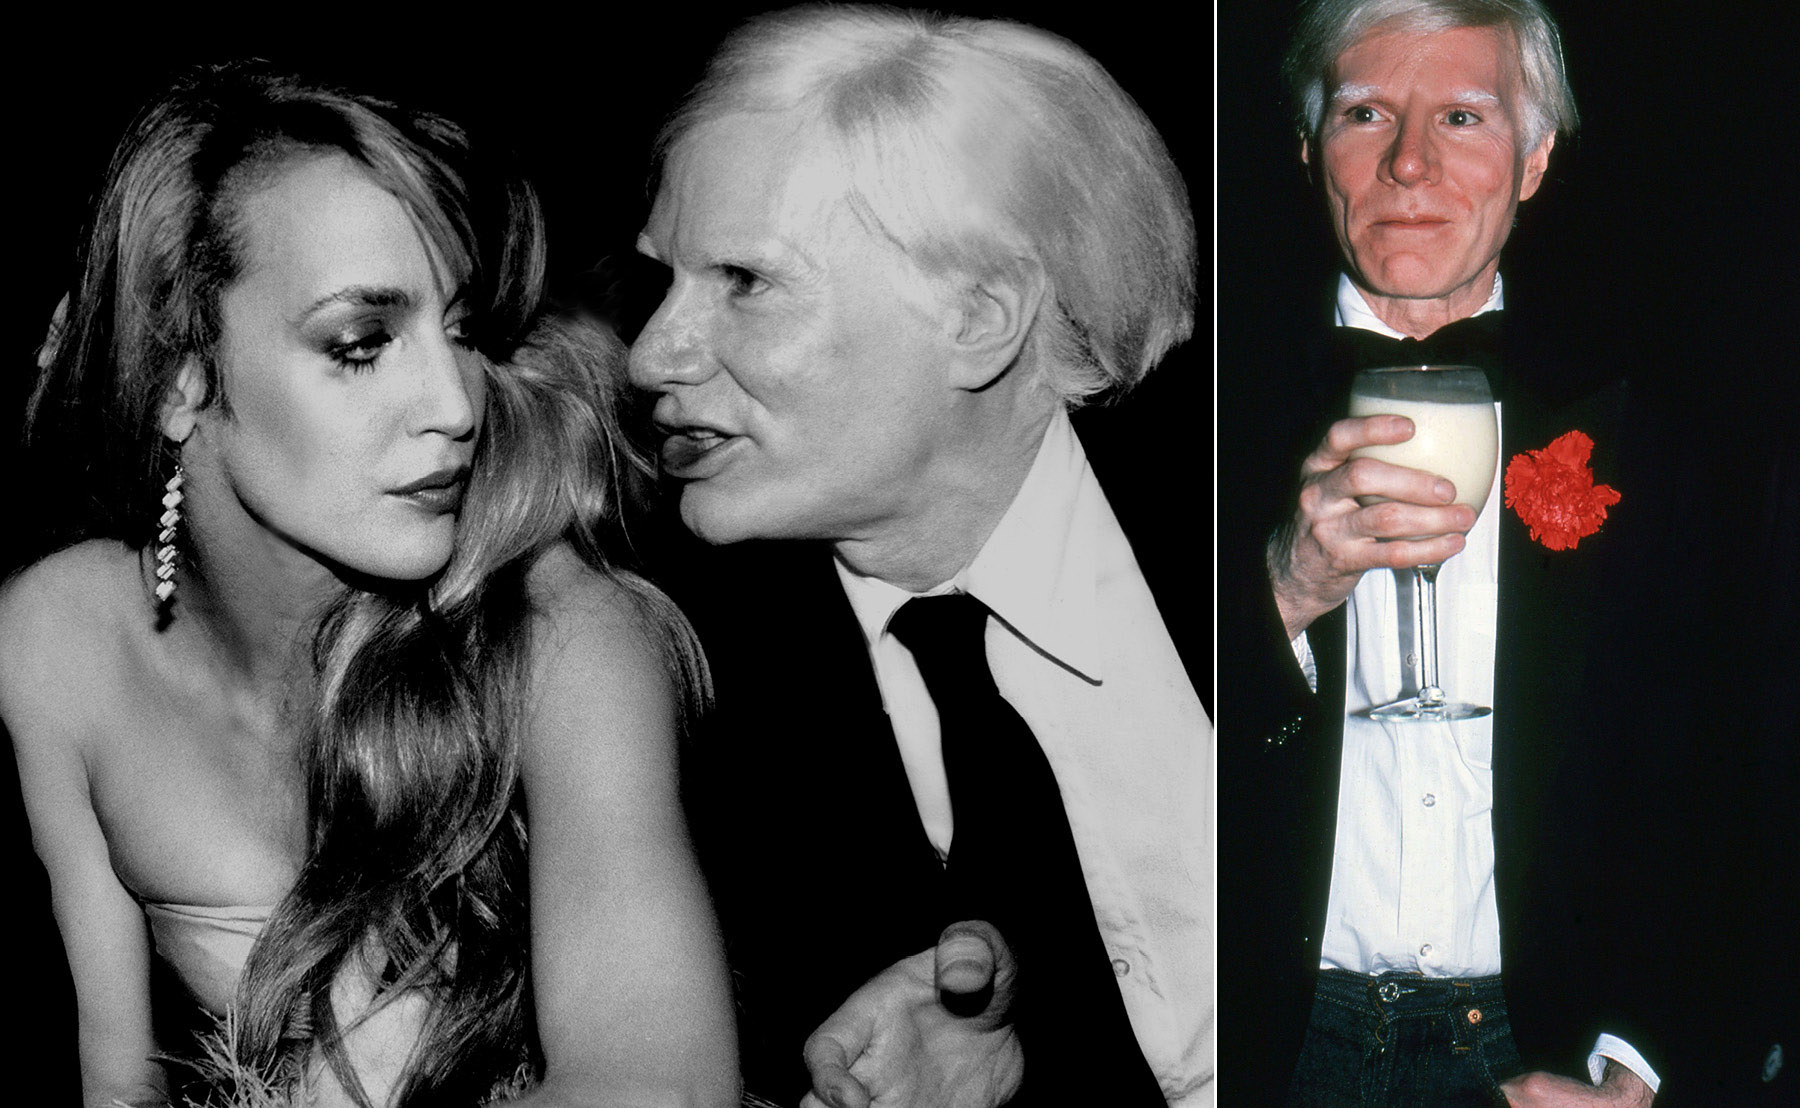 Spirit-&-Flesh-Magazine_LA-VIE-EN-ROSE_Jerry-Hall-&-Andy-Warhol_Andy-Warhol-at-Stuido-54_by_Rose-Hartman_